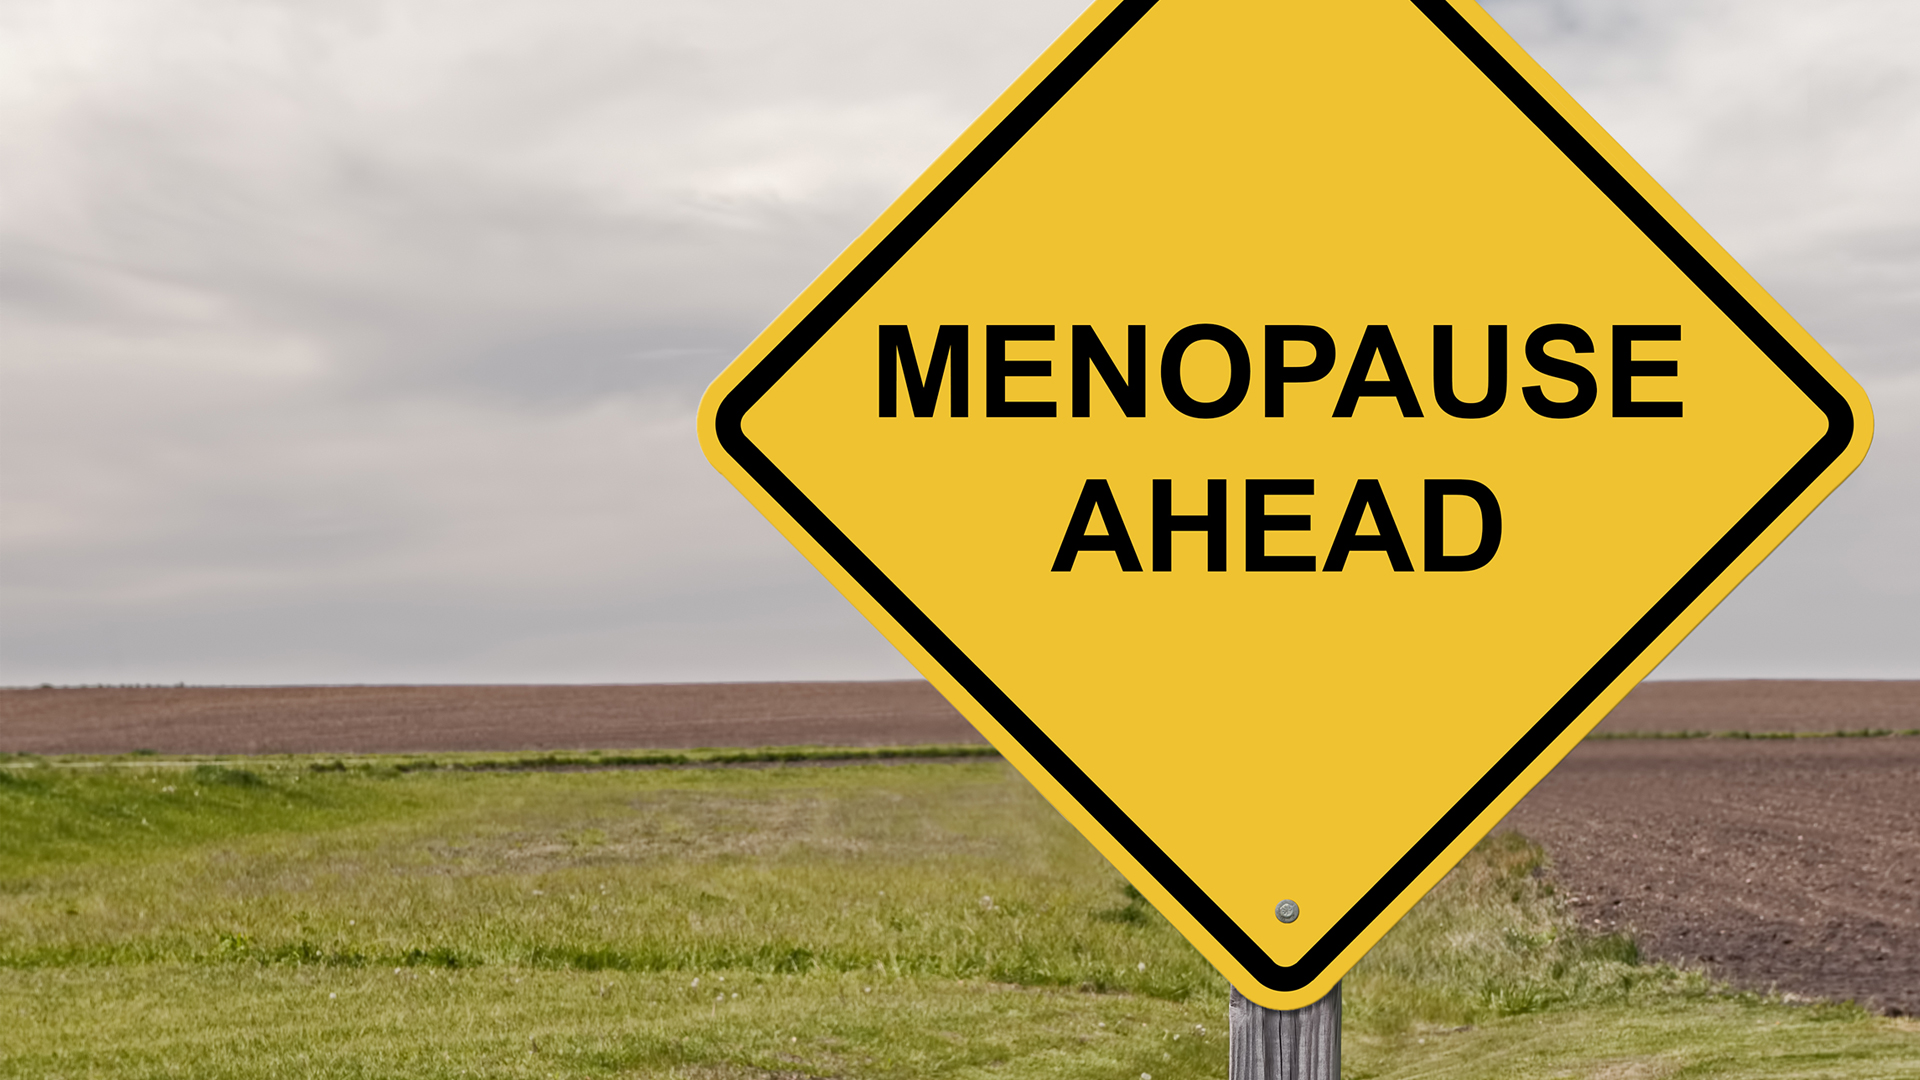 01.What-is-Menopause